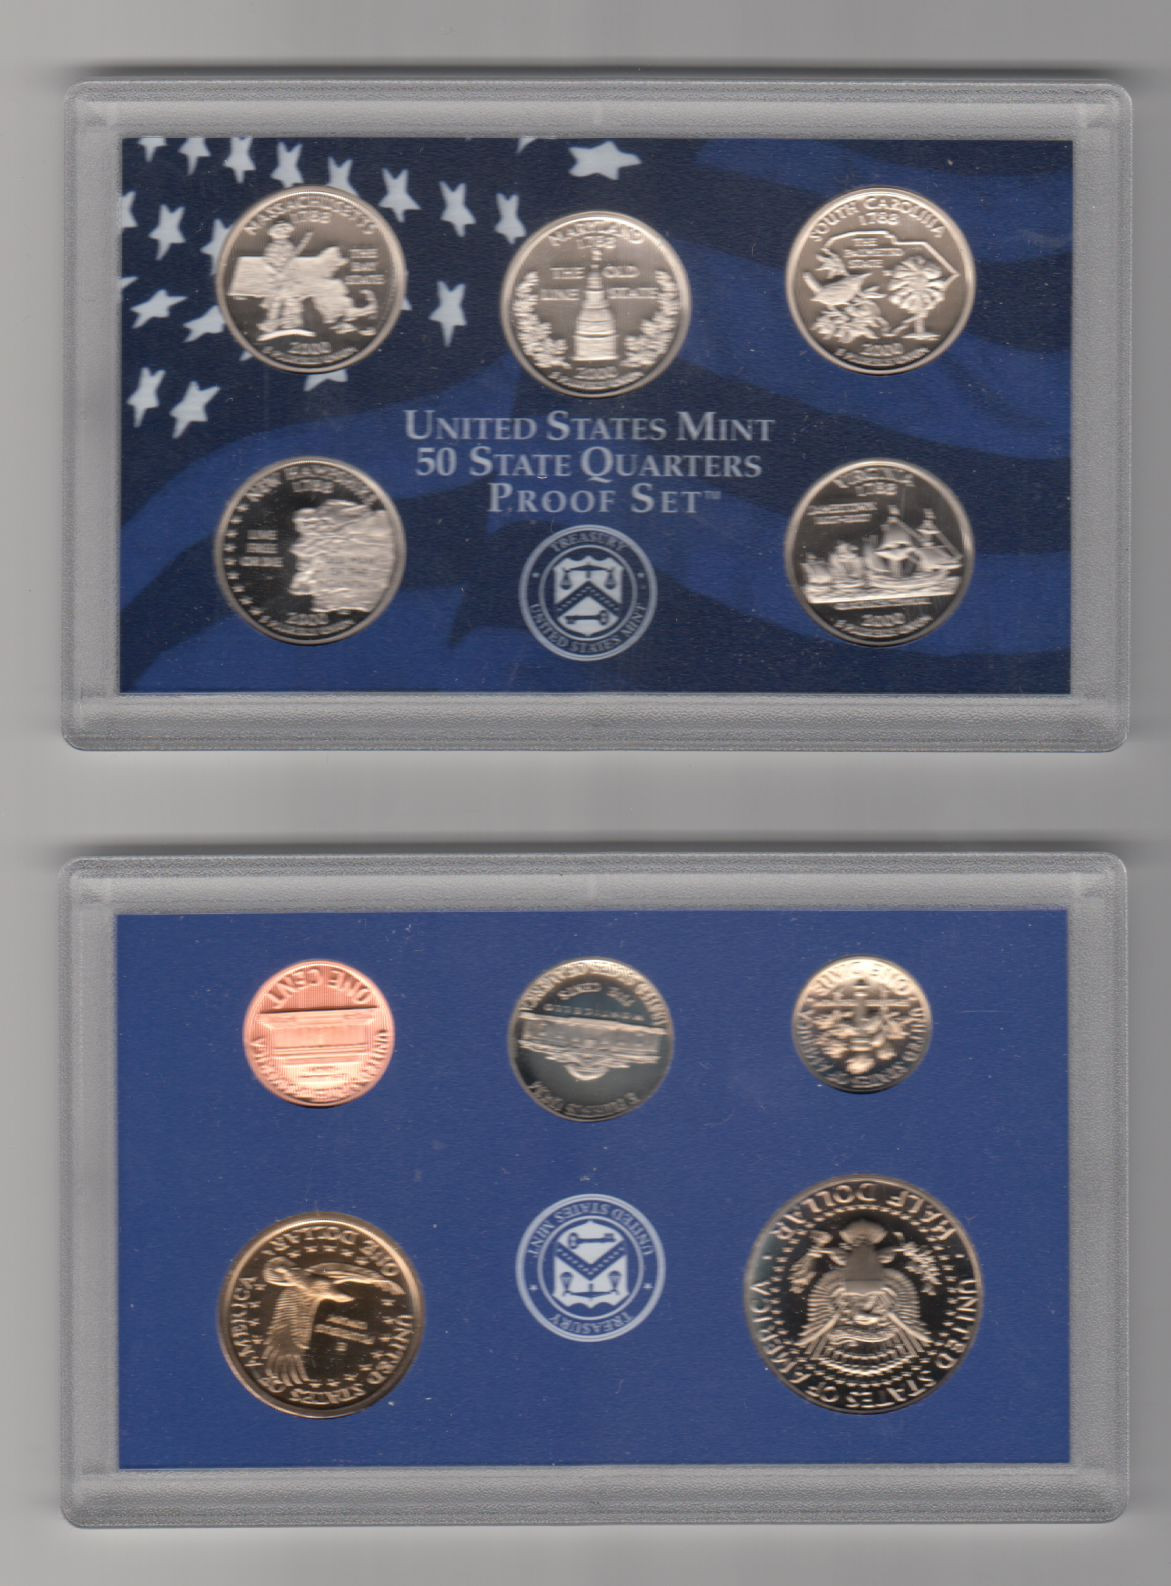 Awesome 10 Coins 50 State Quarters Proof Set Us Mint 2000 State Quarter Set Value Of Lovely 2014 D Everglades National Park Quarter Value America State Quarter Set Value